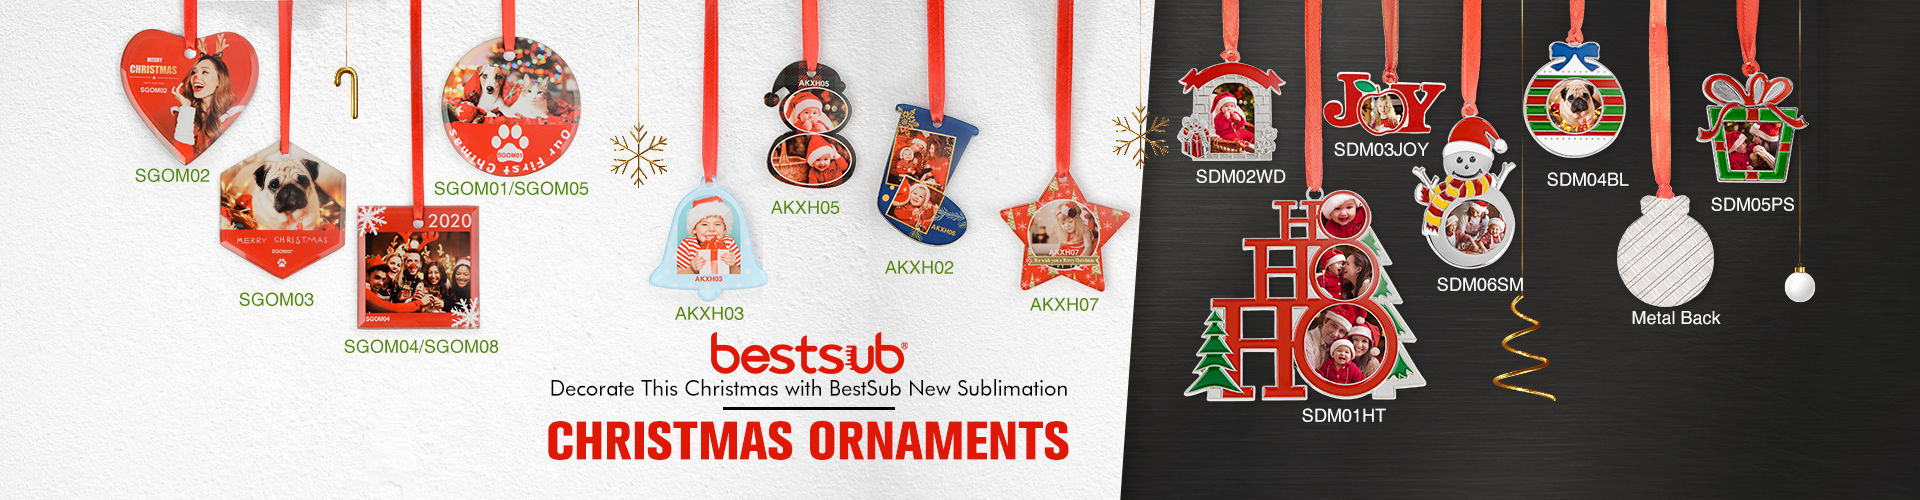 2020-7-20_Sublimation_Christmas_Ornaments_new_web